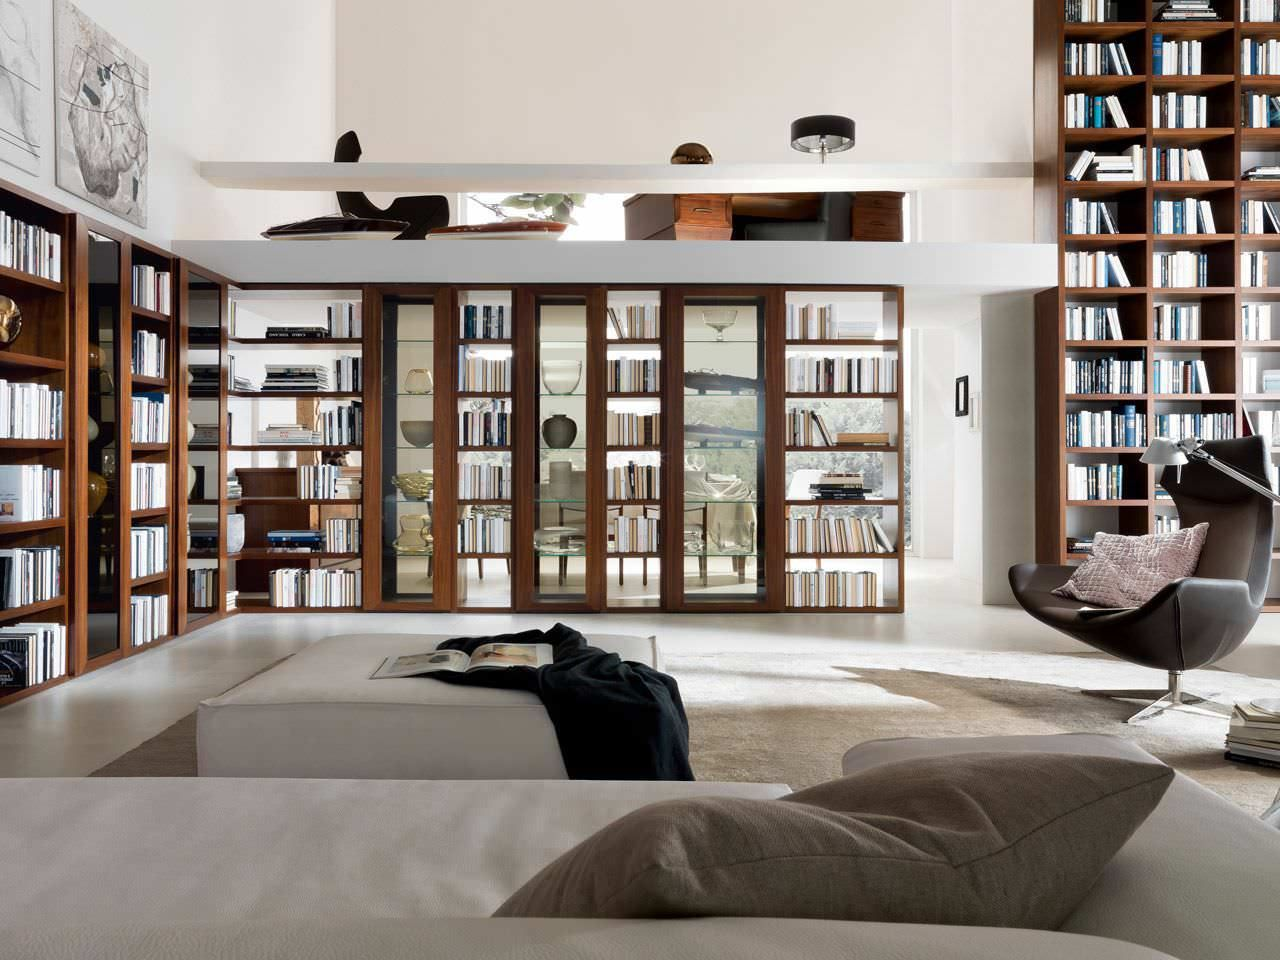 furniture furniture amazing bookcases perfect for smart storage system and furniture amazing home library ideas featuring - Library Furniture Home